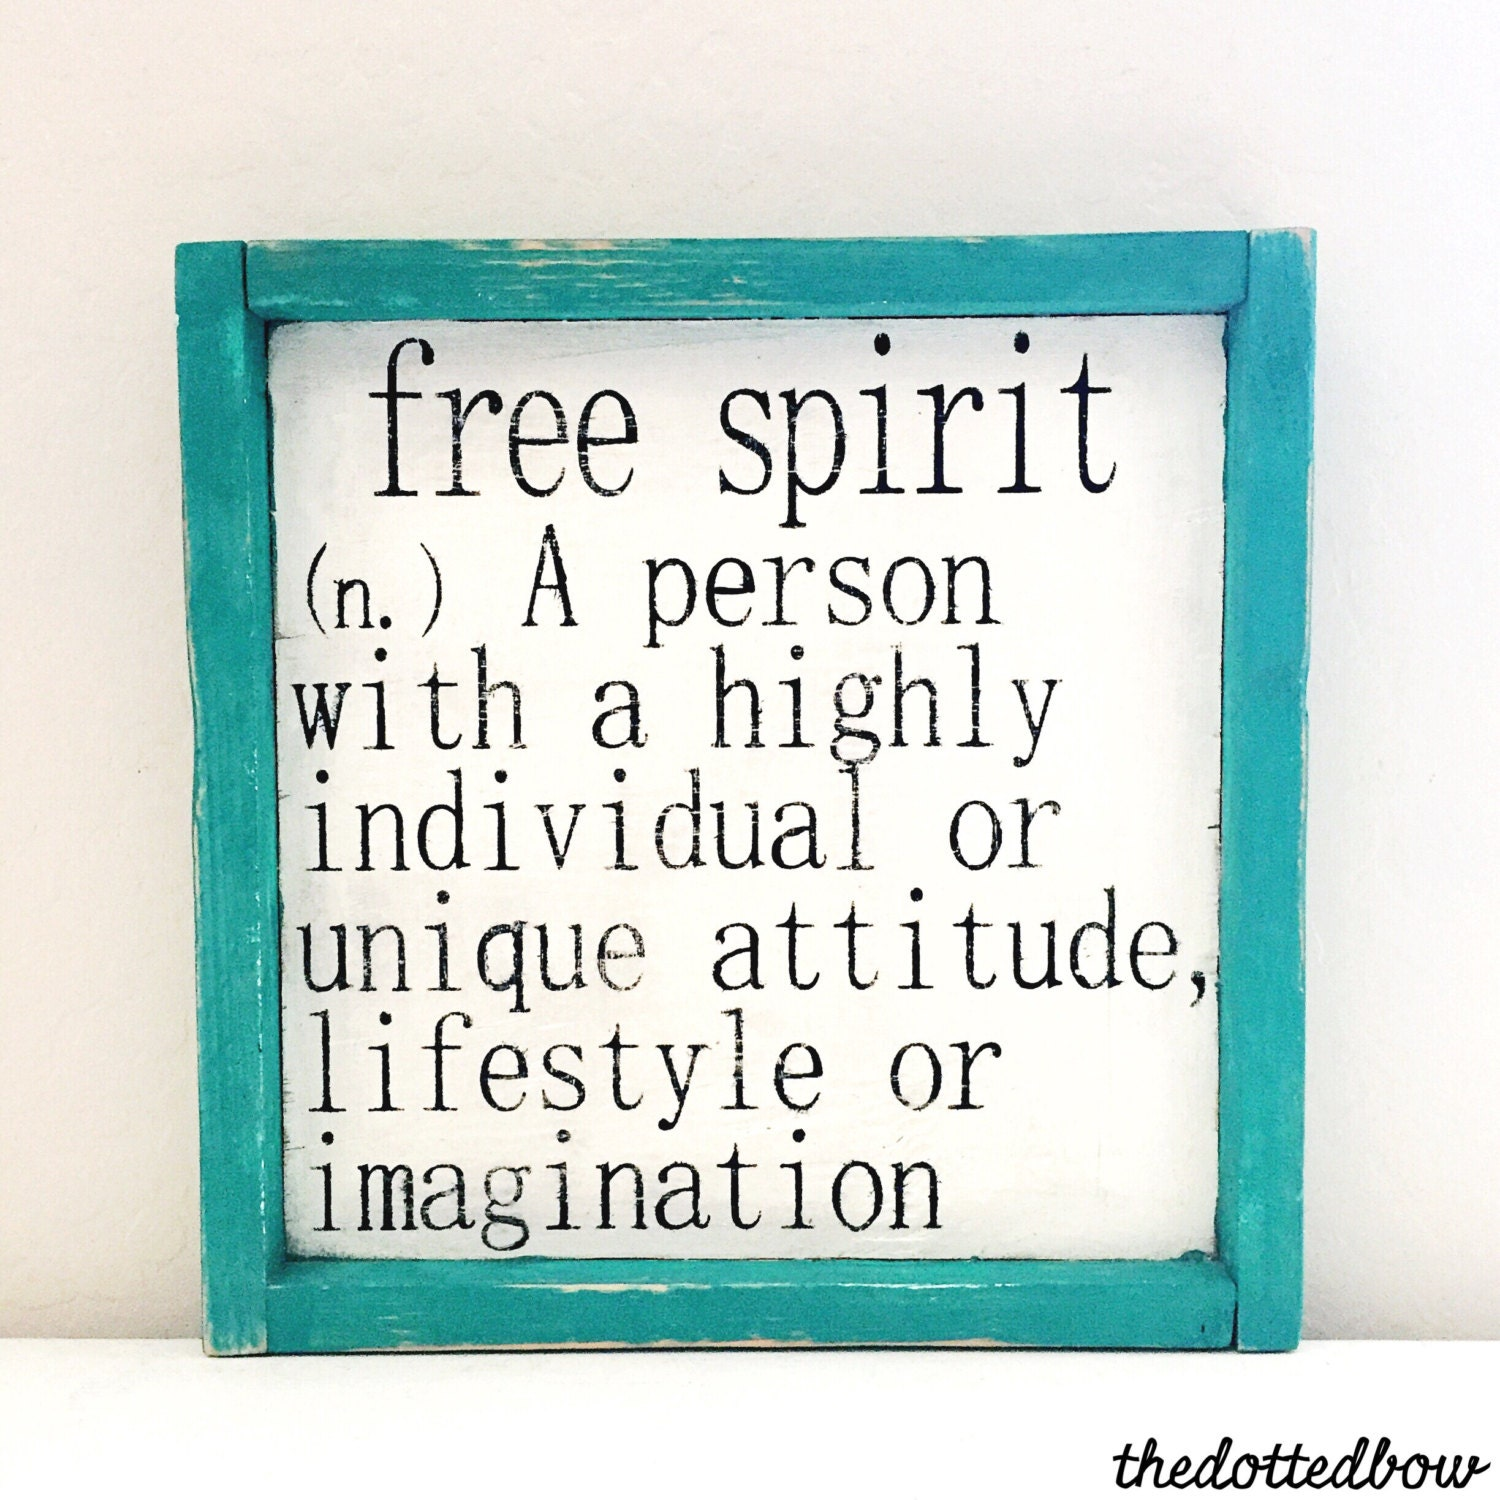 Free Spirit Definition Wood Sign by thedottedbow on Etsy